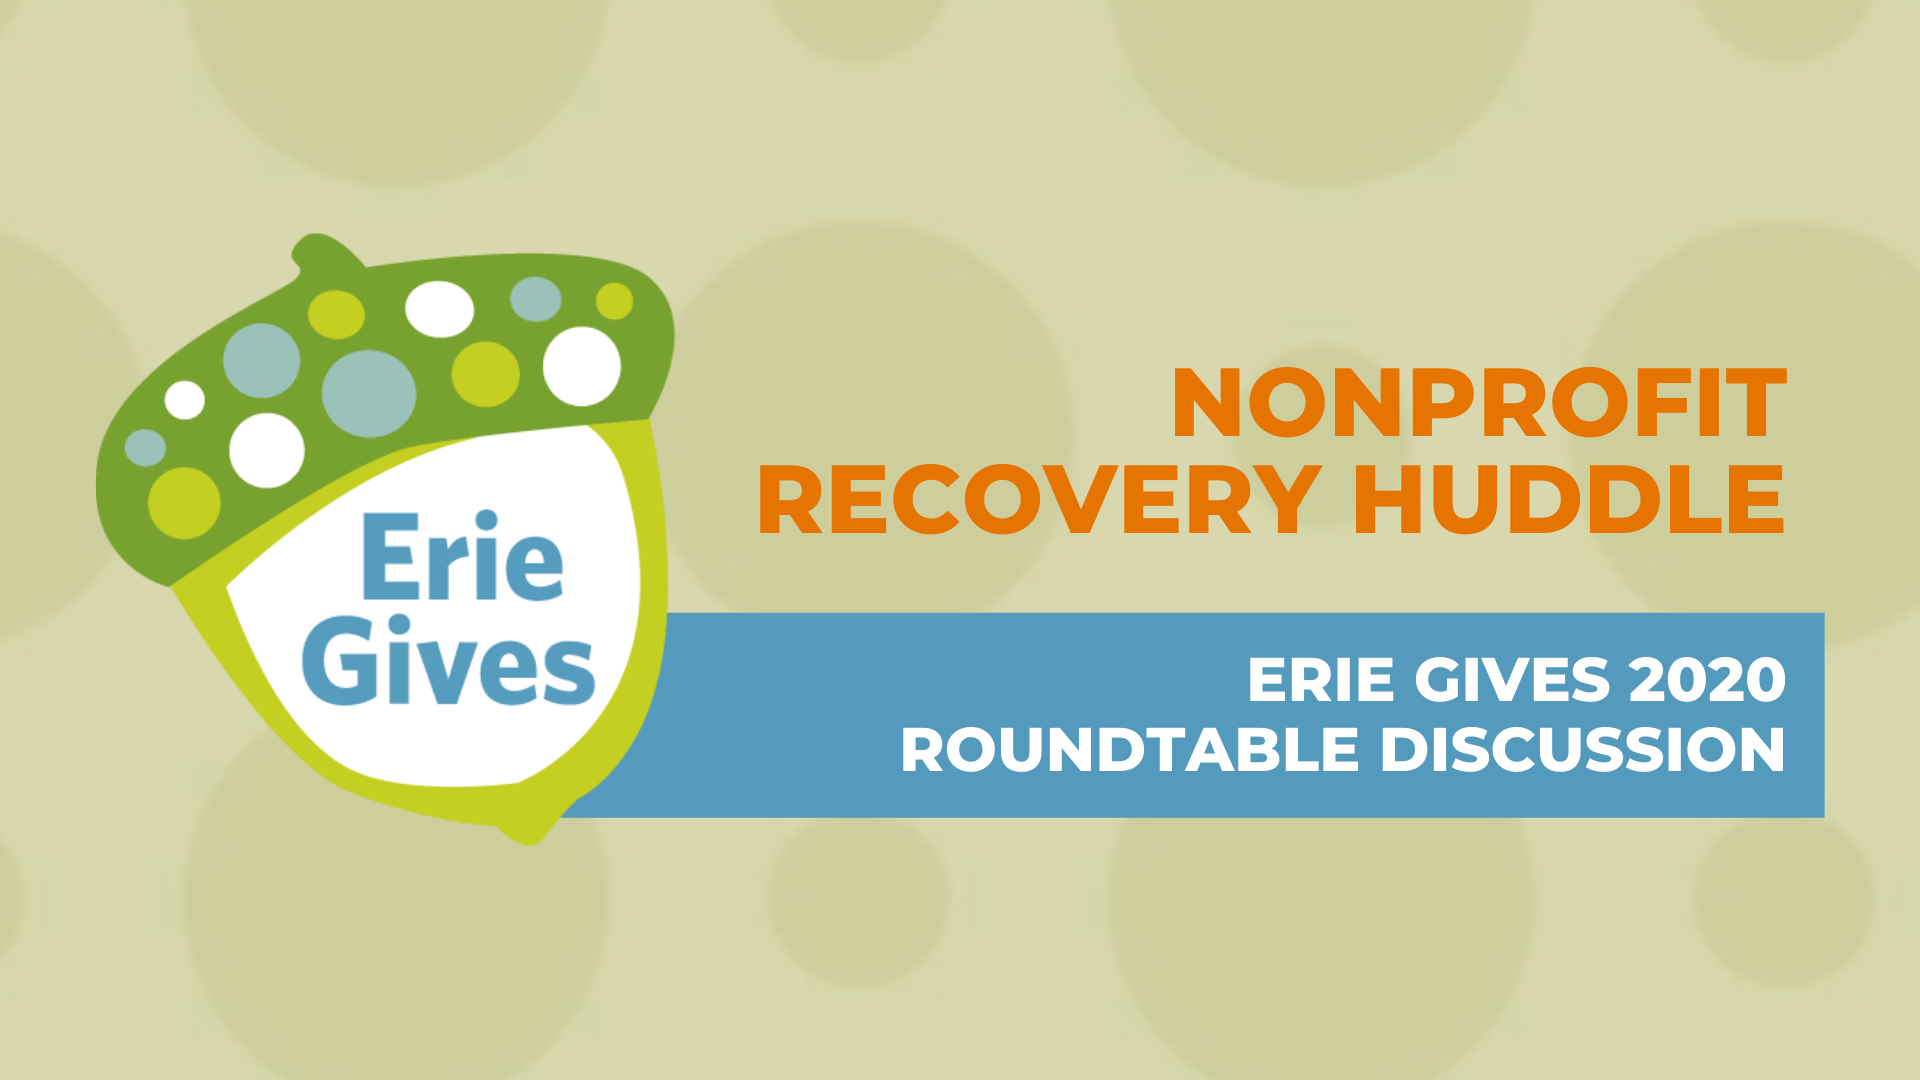 Nonprofit Recovery Huddle: Erie Gives 2020